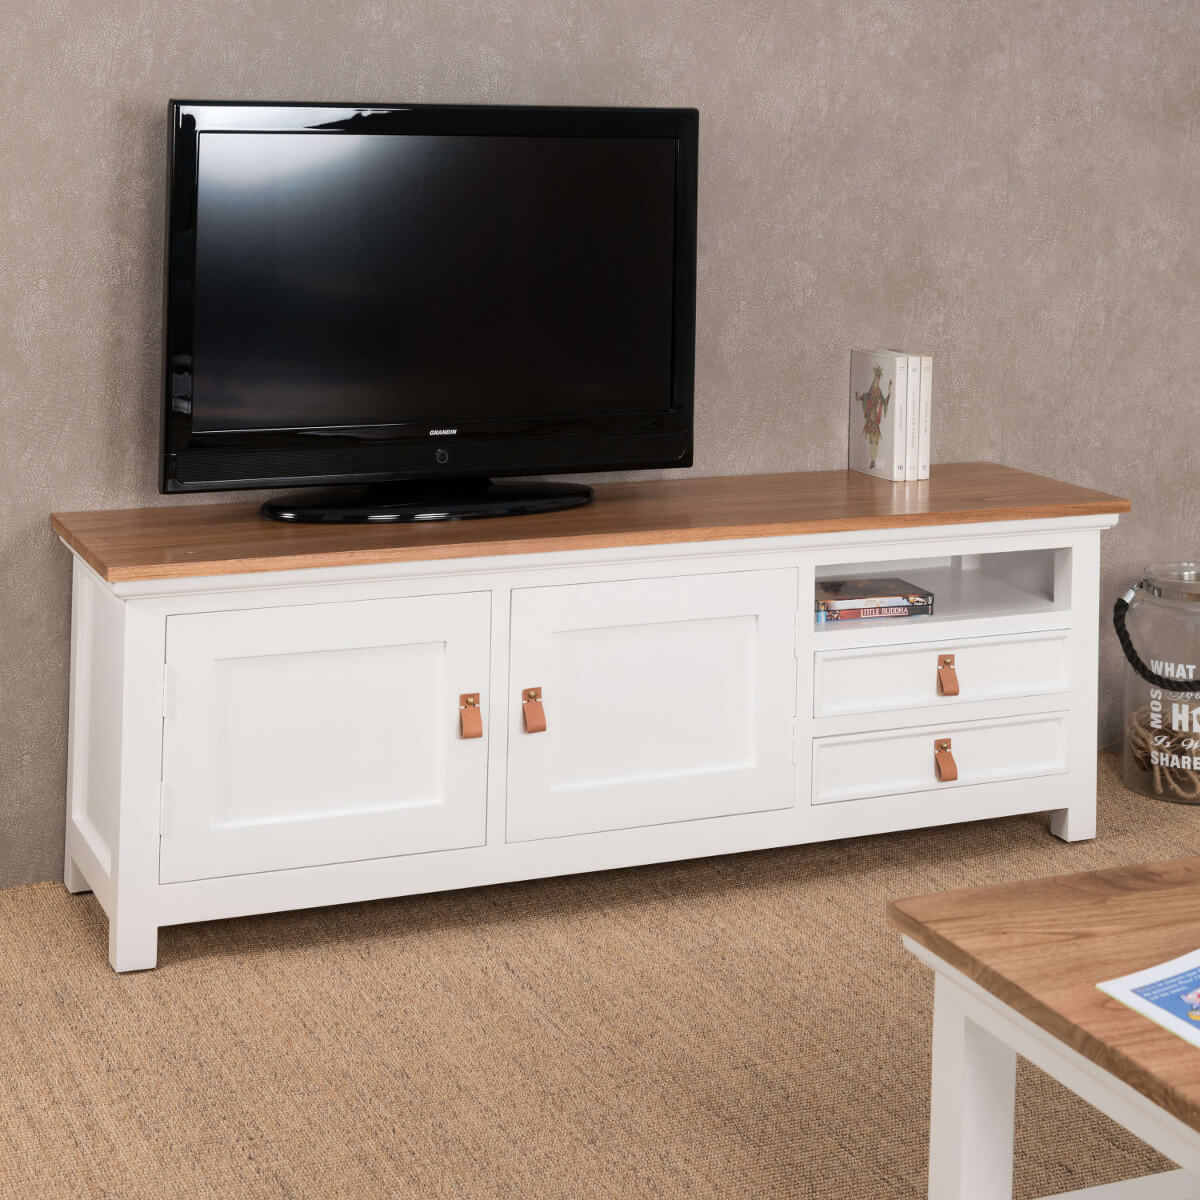 Meuble tv salon bois massif teck et pin chic rectangle for Meuble blanc sejour